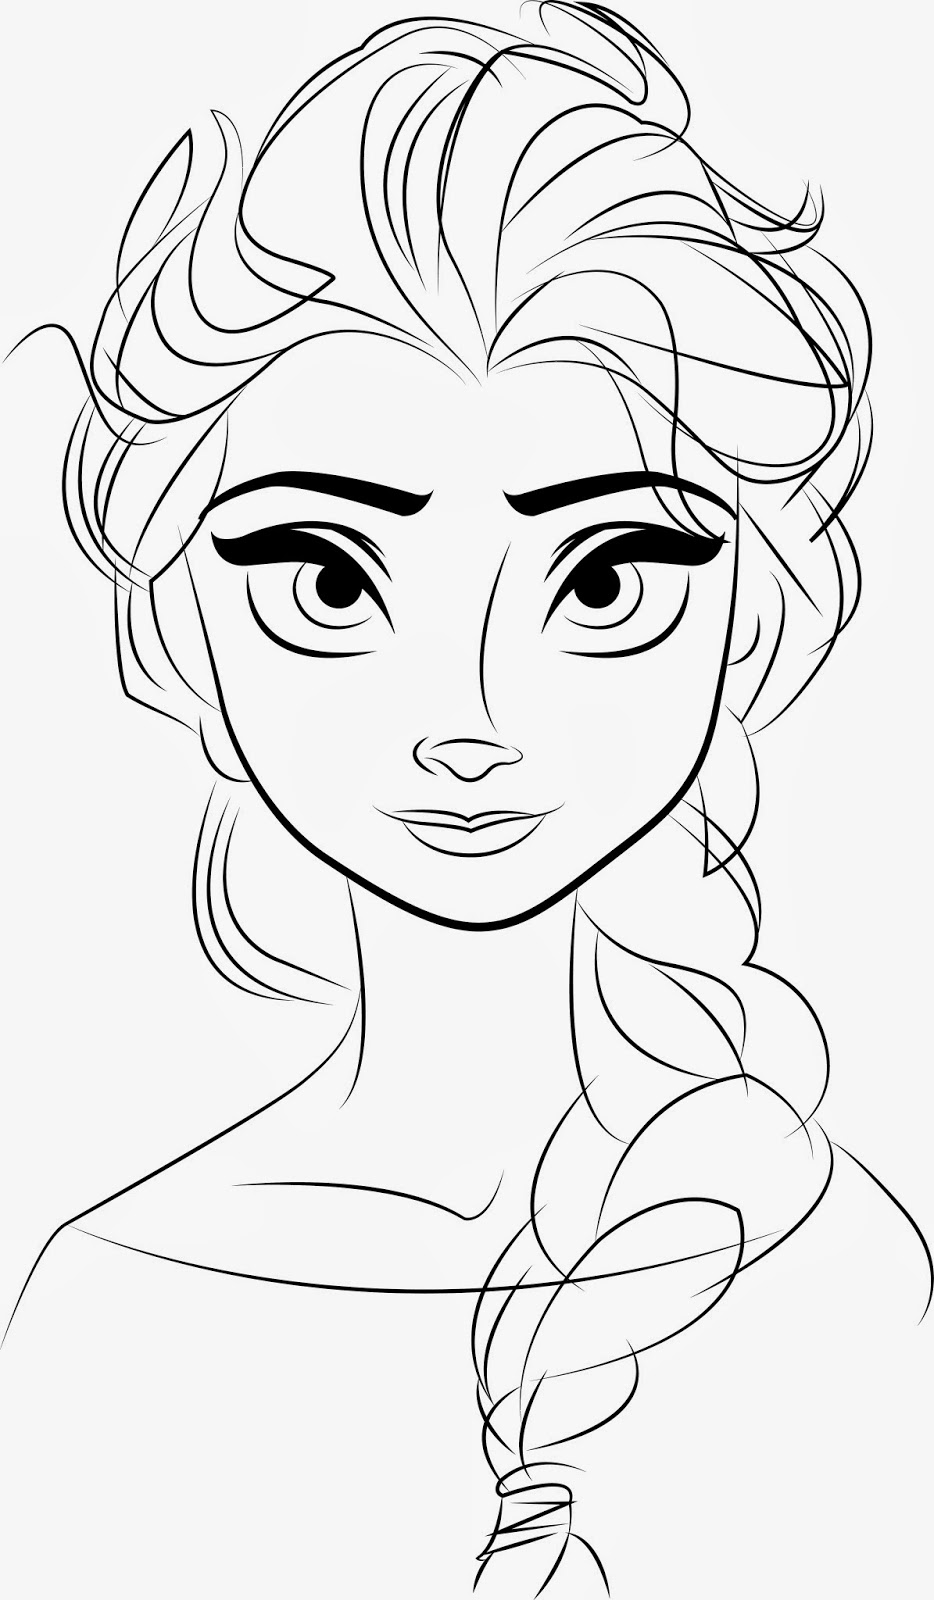 disney printable easy coloring pages easy to draw and color disney fairy tinkerbell coloring easy disney printable pages coloring